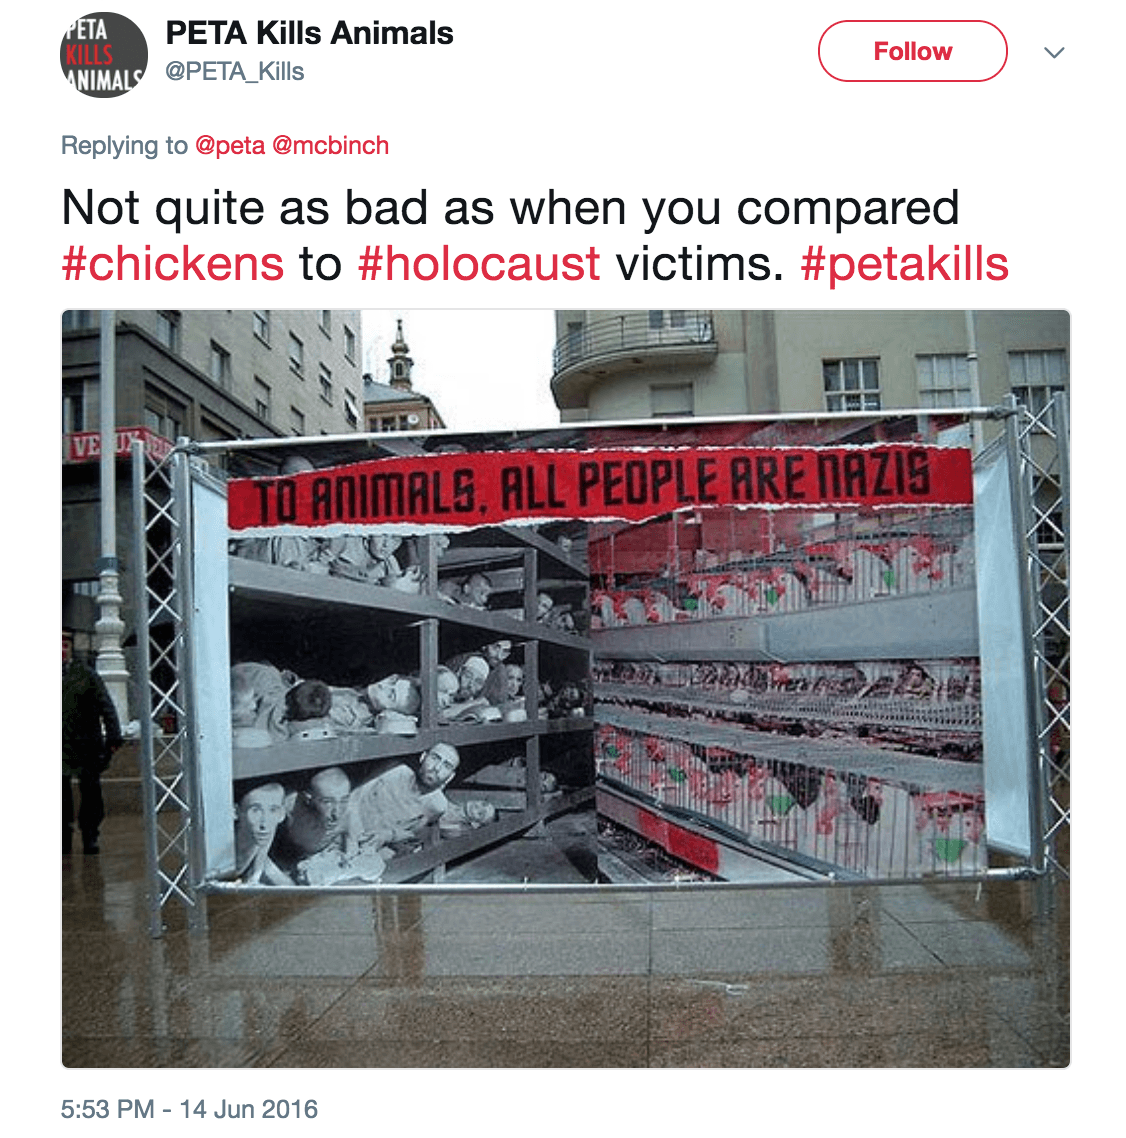 PETA chicken holocaust ad